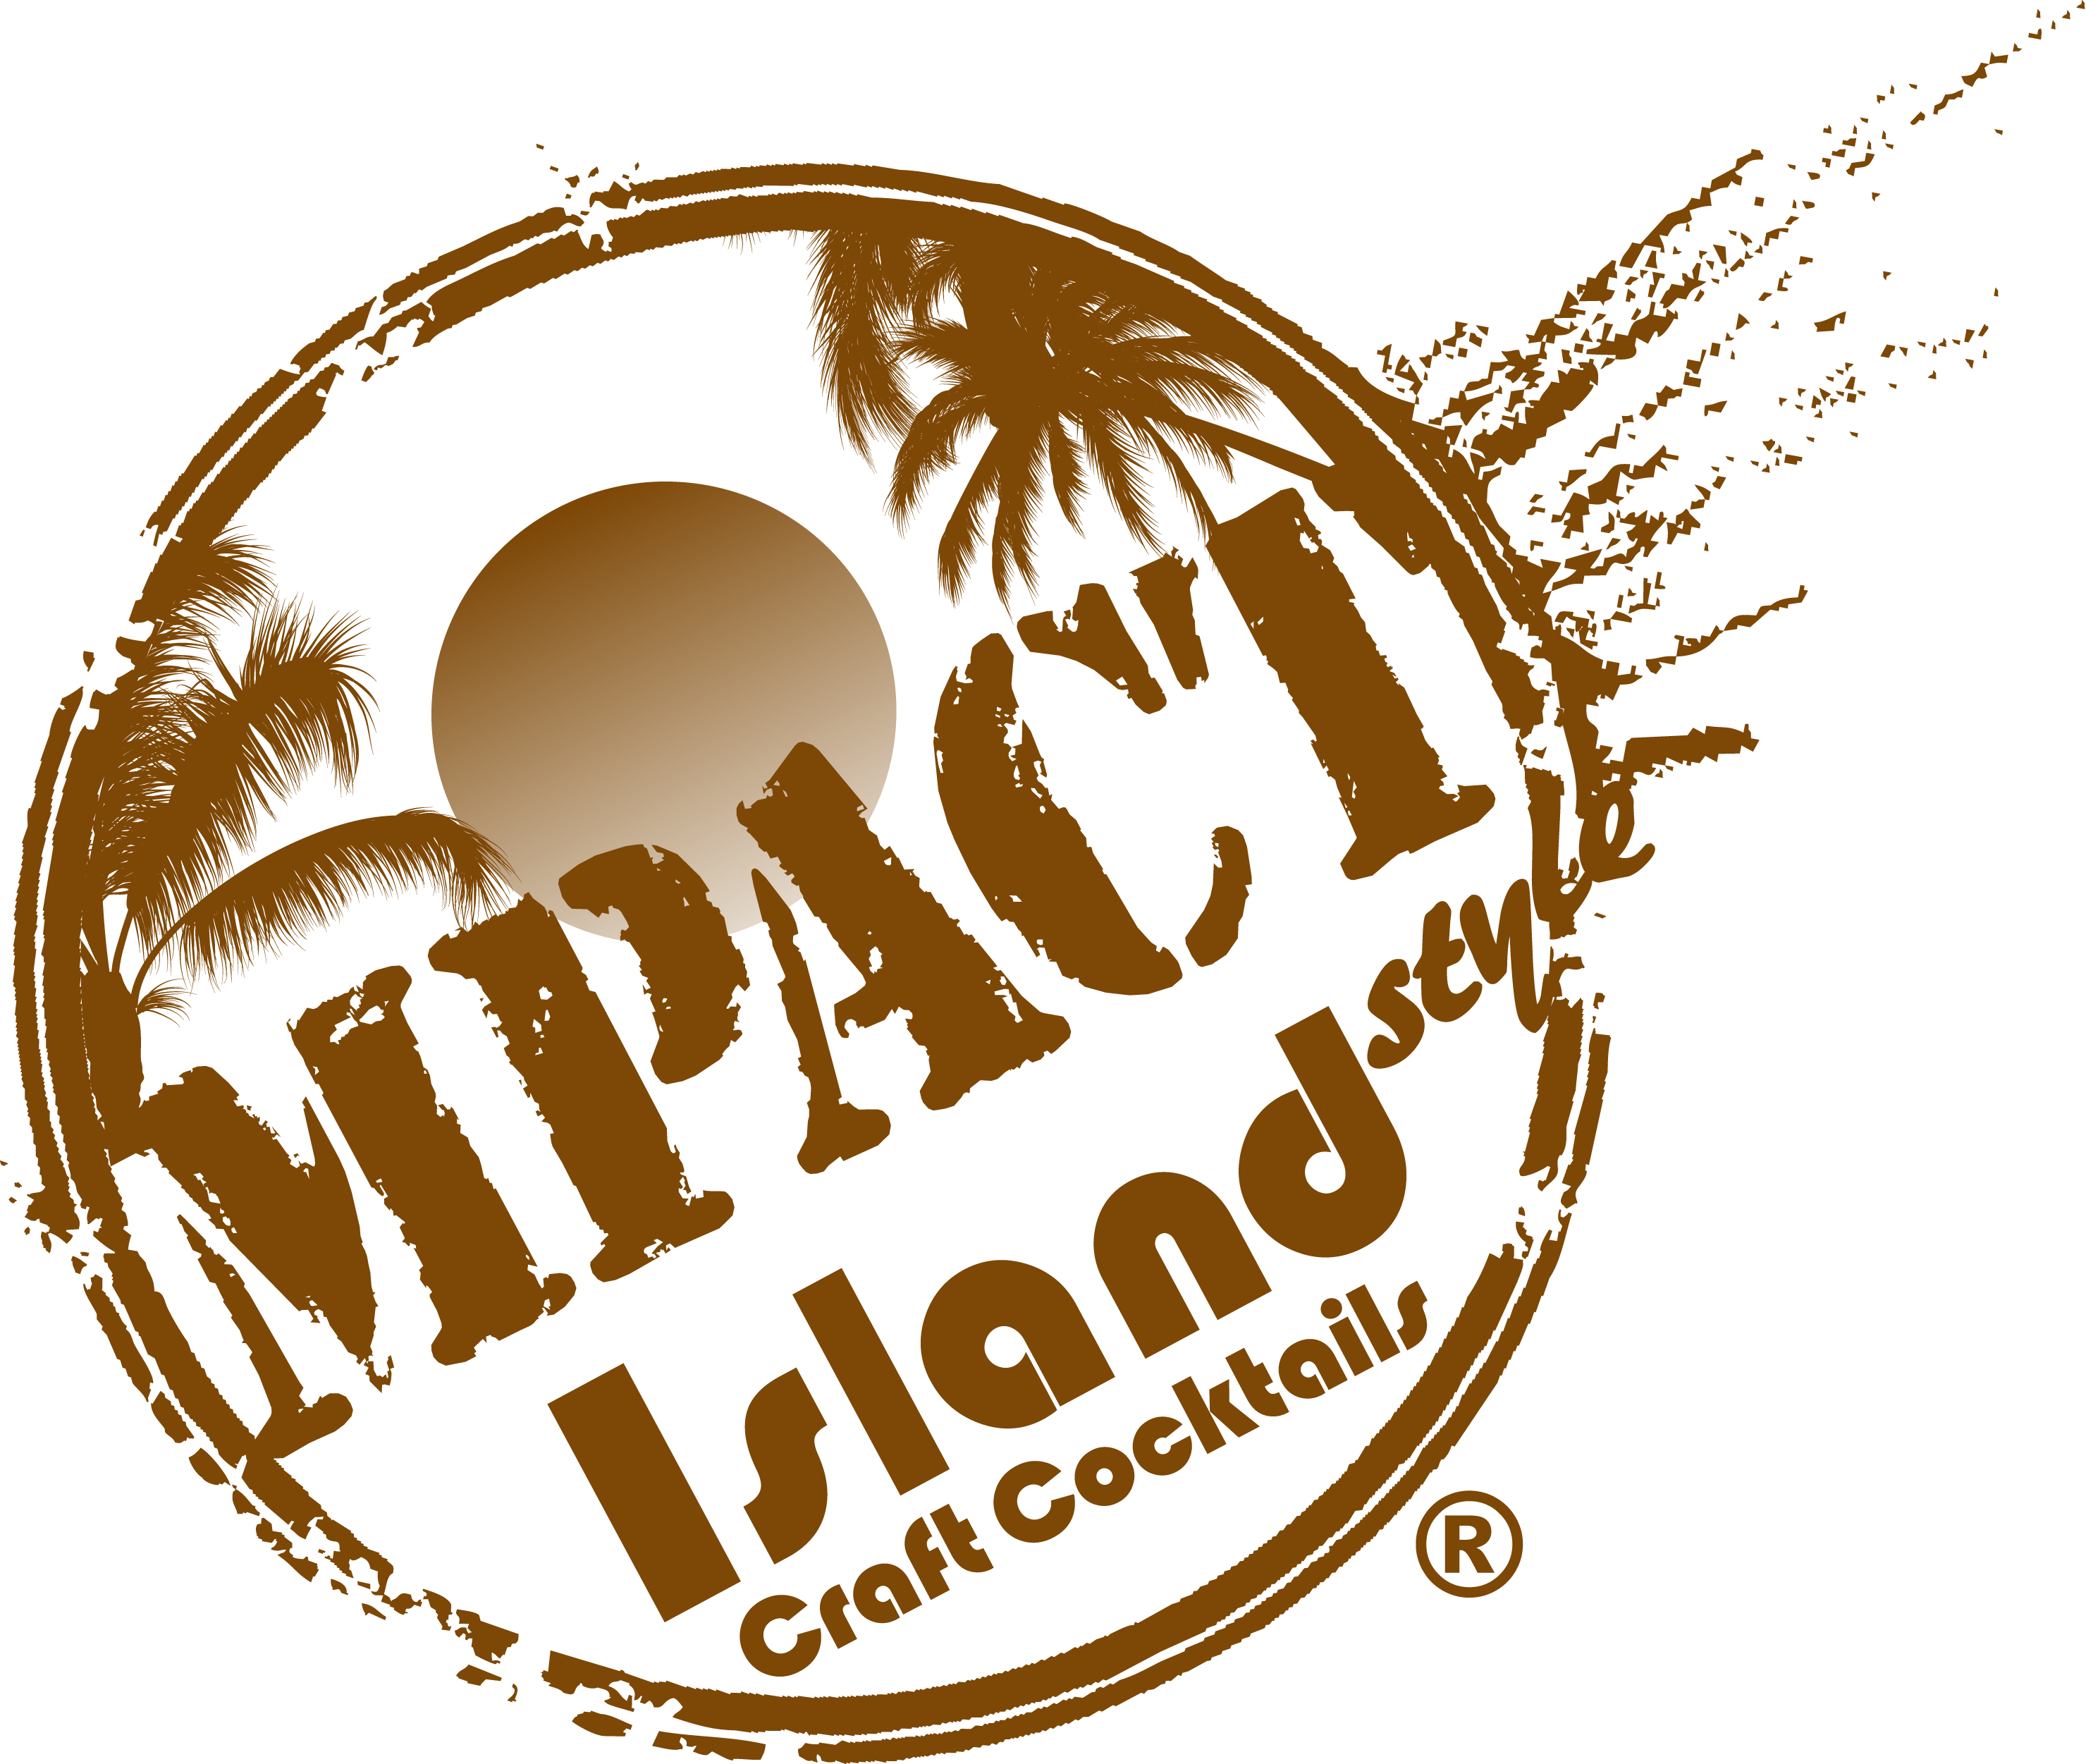 Image of MPACT Beverage Company logo in tropical brown colors